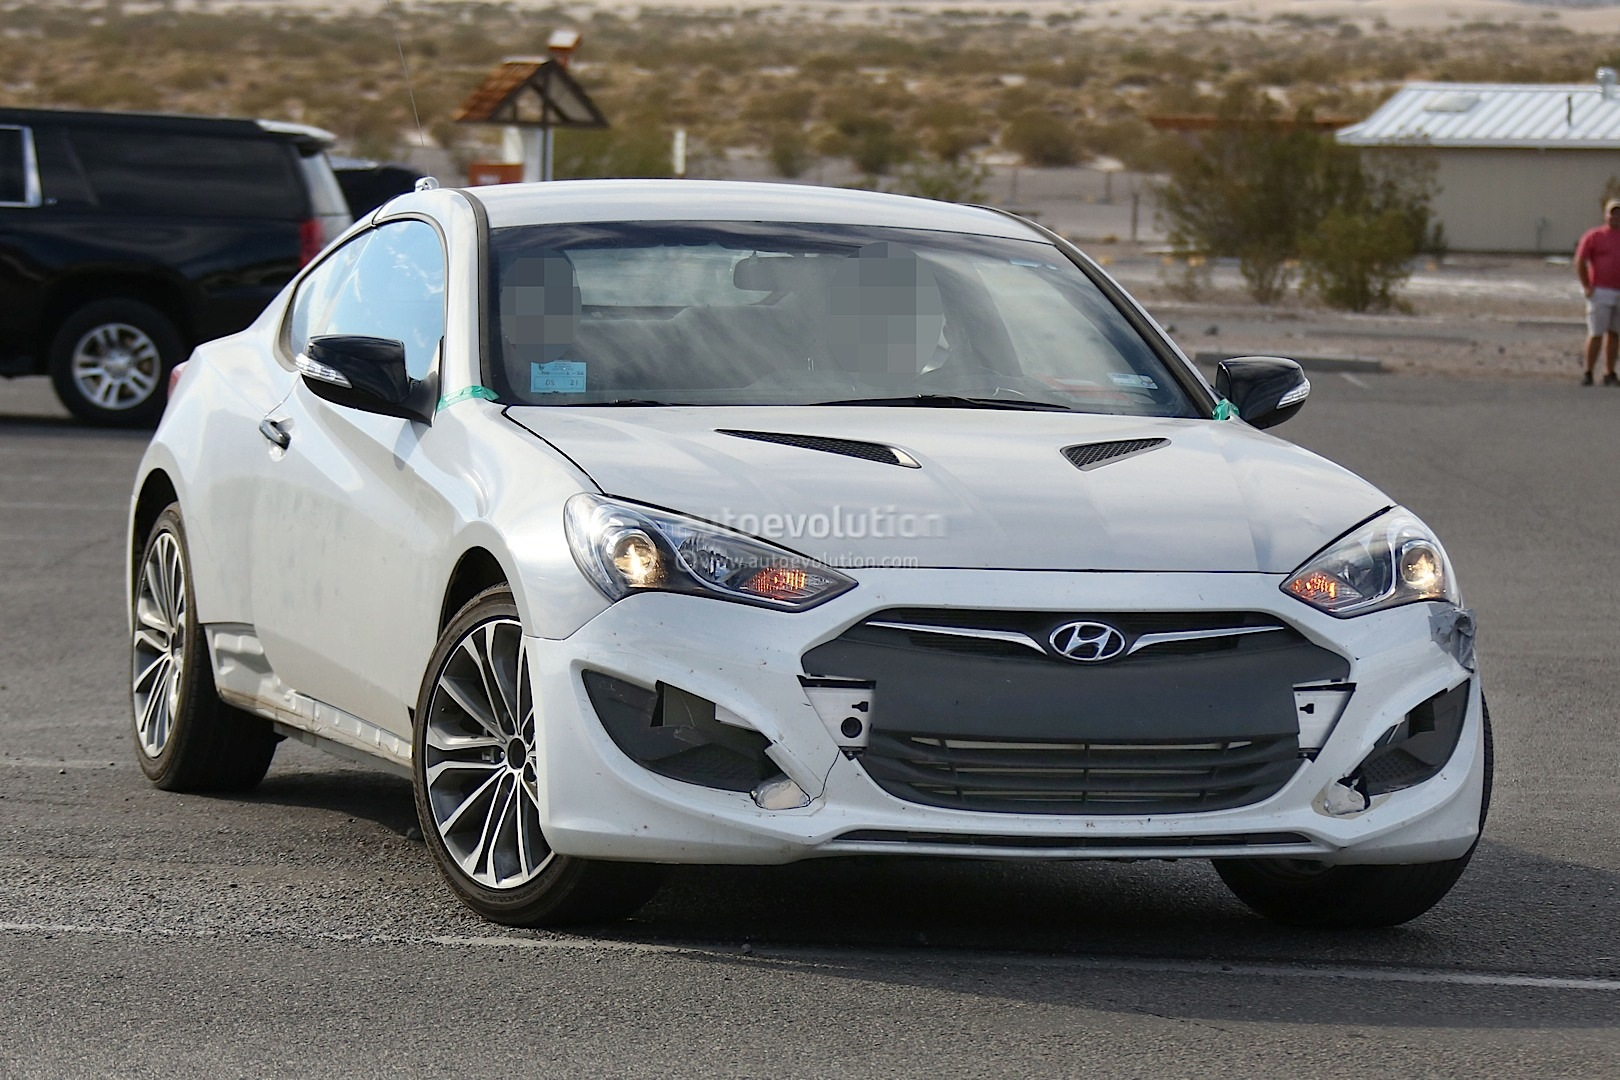 New 2017 Hyundai Genesis Coupe Spied For The